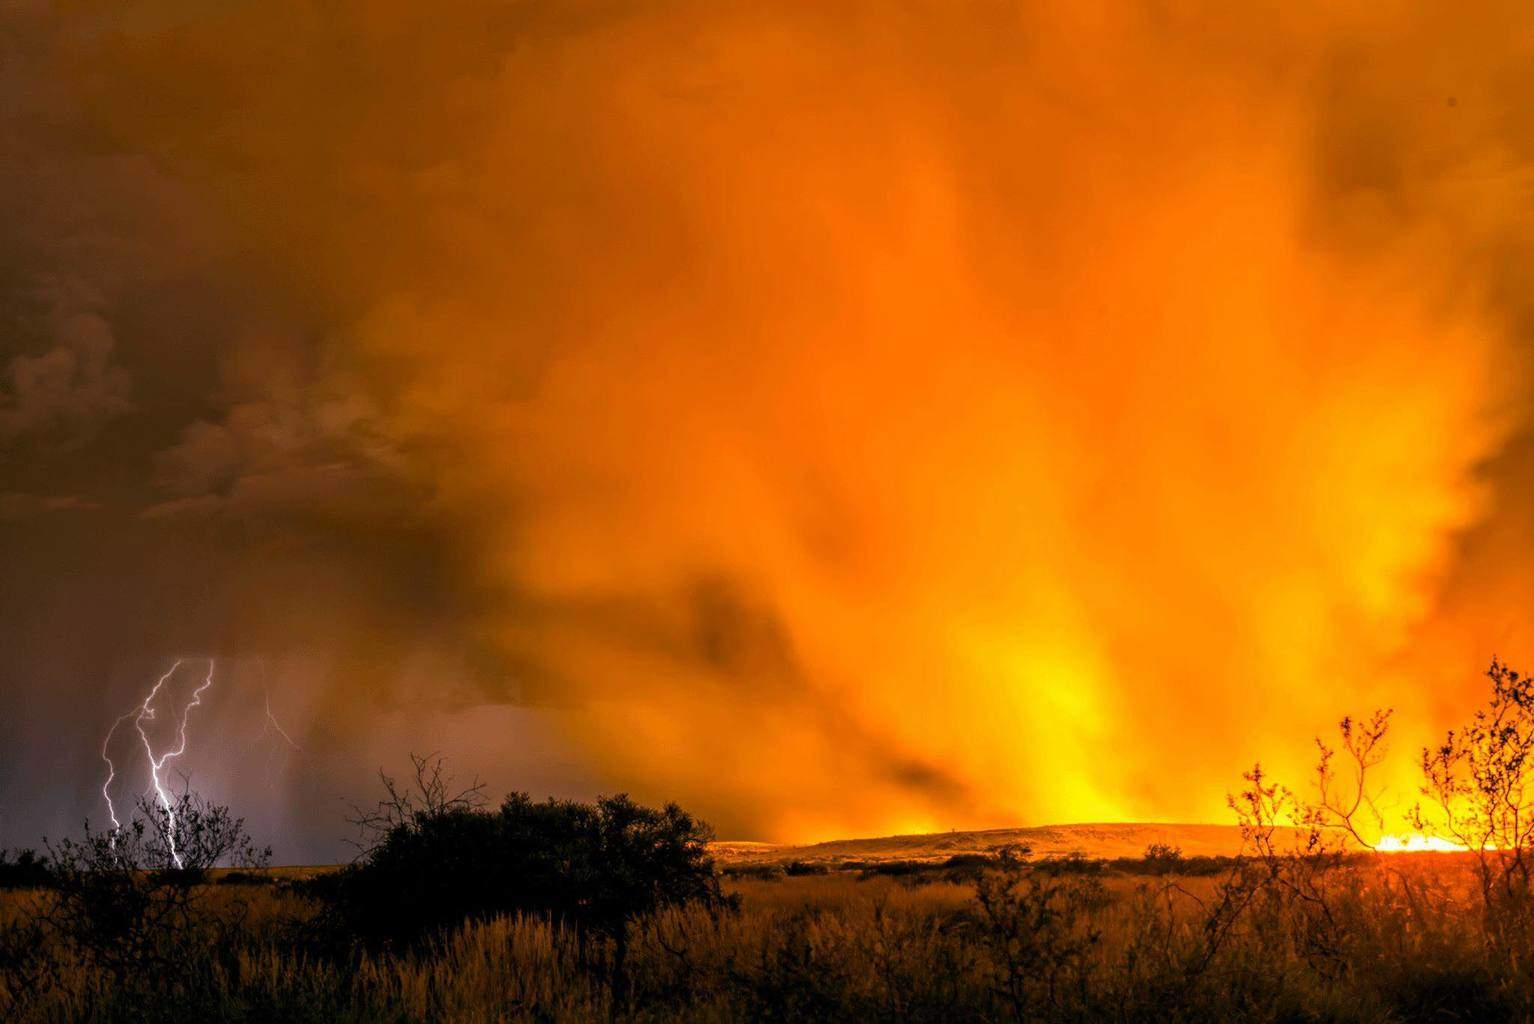 Flames and flanges taken in Western Australia